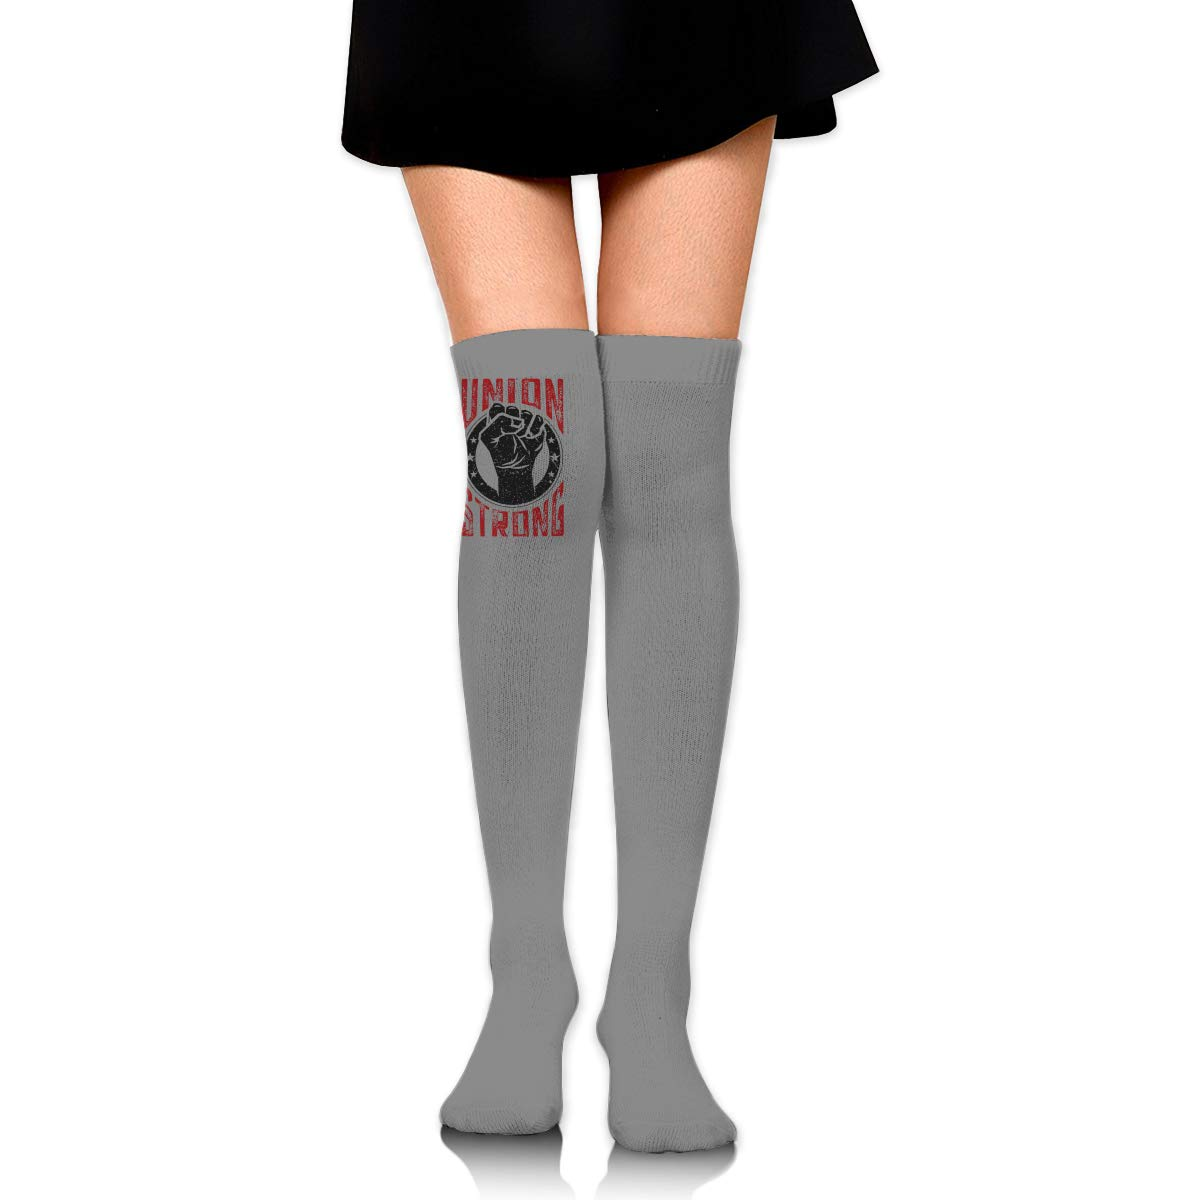 Union Strong Long Tight Thigh High Socks Over The Knee High Boot Stockings Leg Warmers